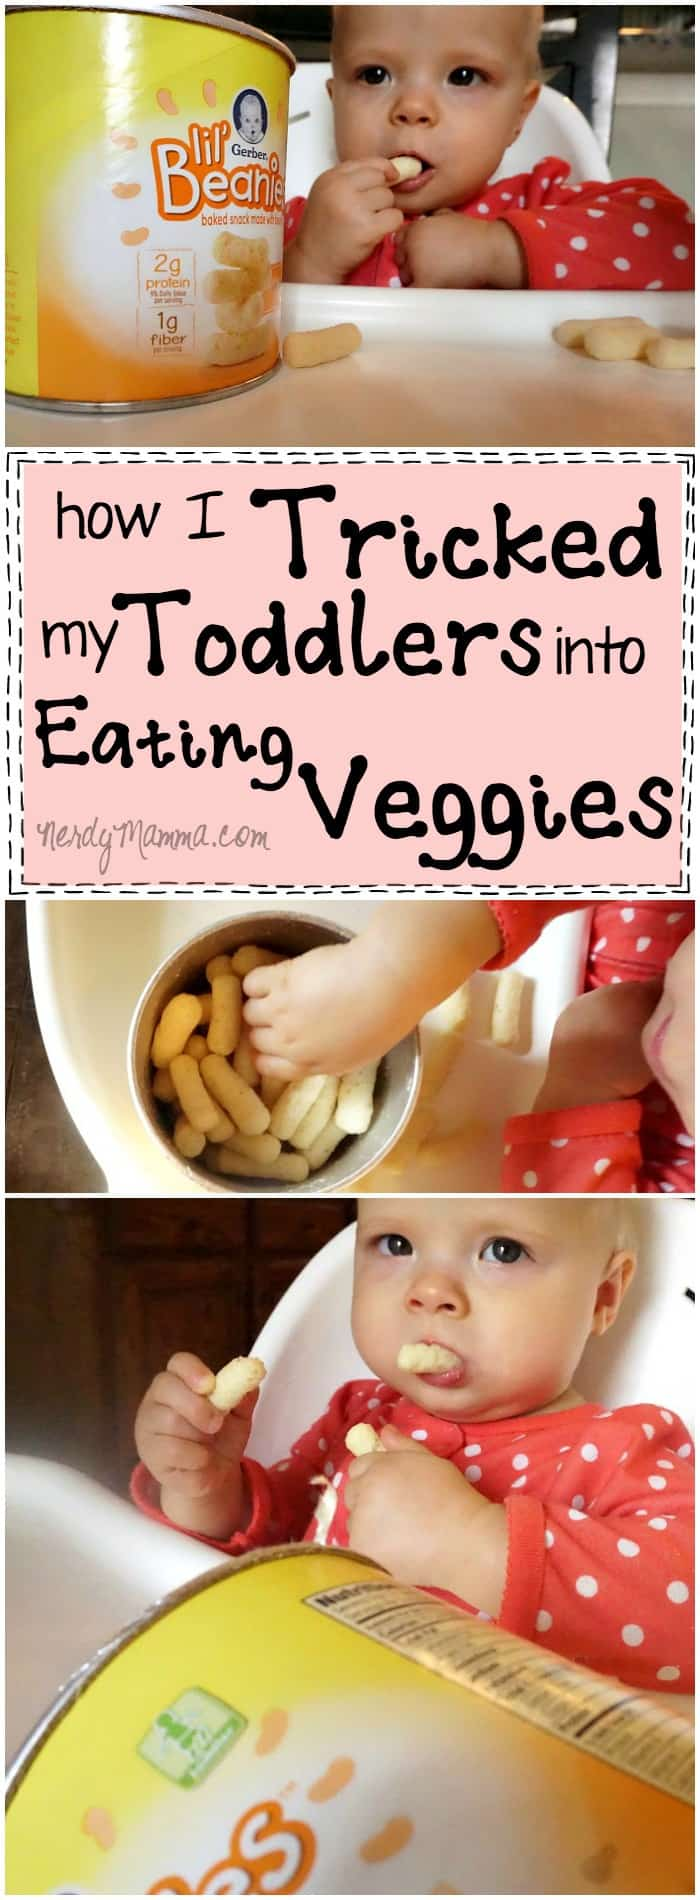 I love this mom. She's hilarious--tricking her toddler into eating veggies. Just clever. LOL!